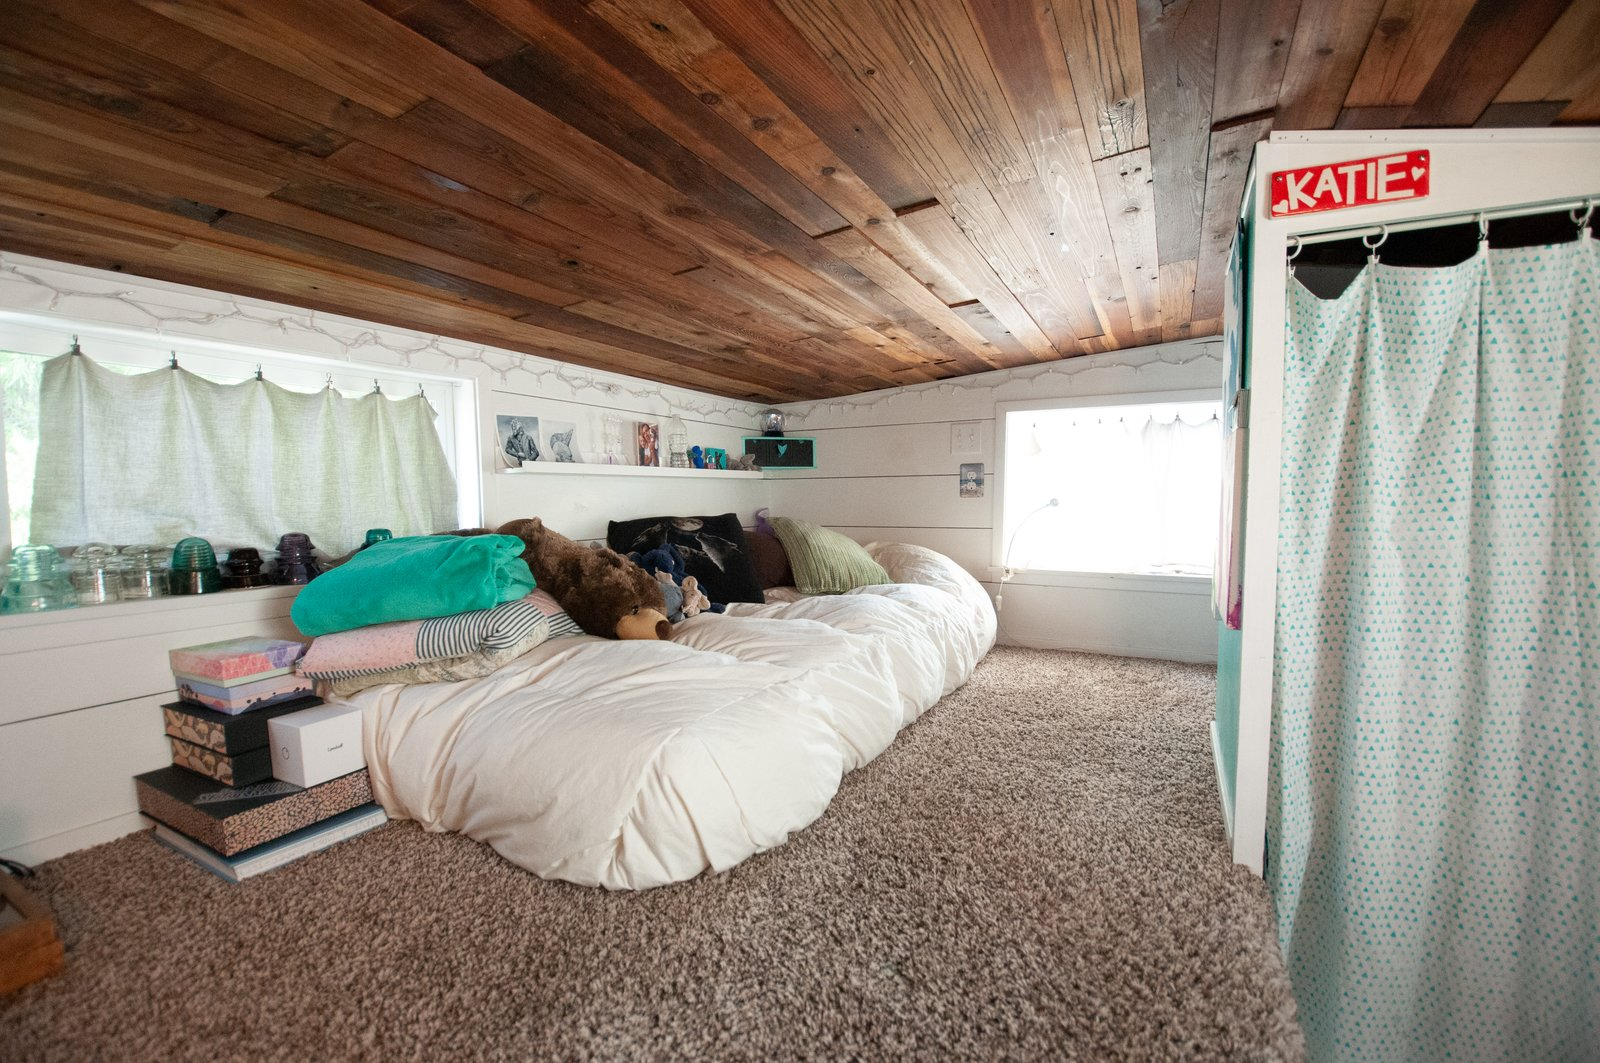 Her Tiny Home loft bedroom